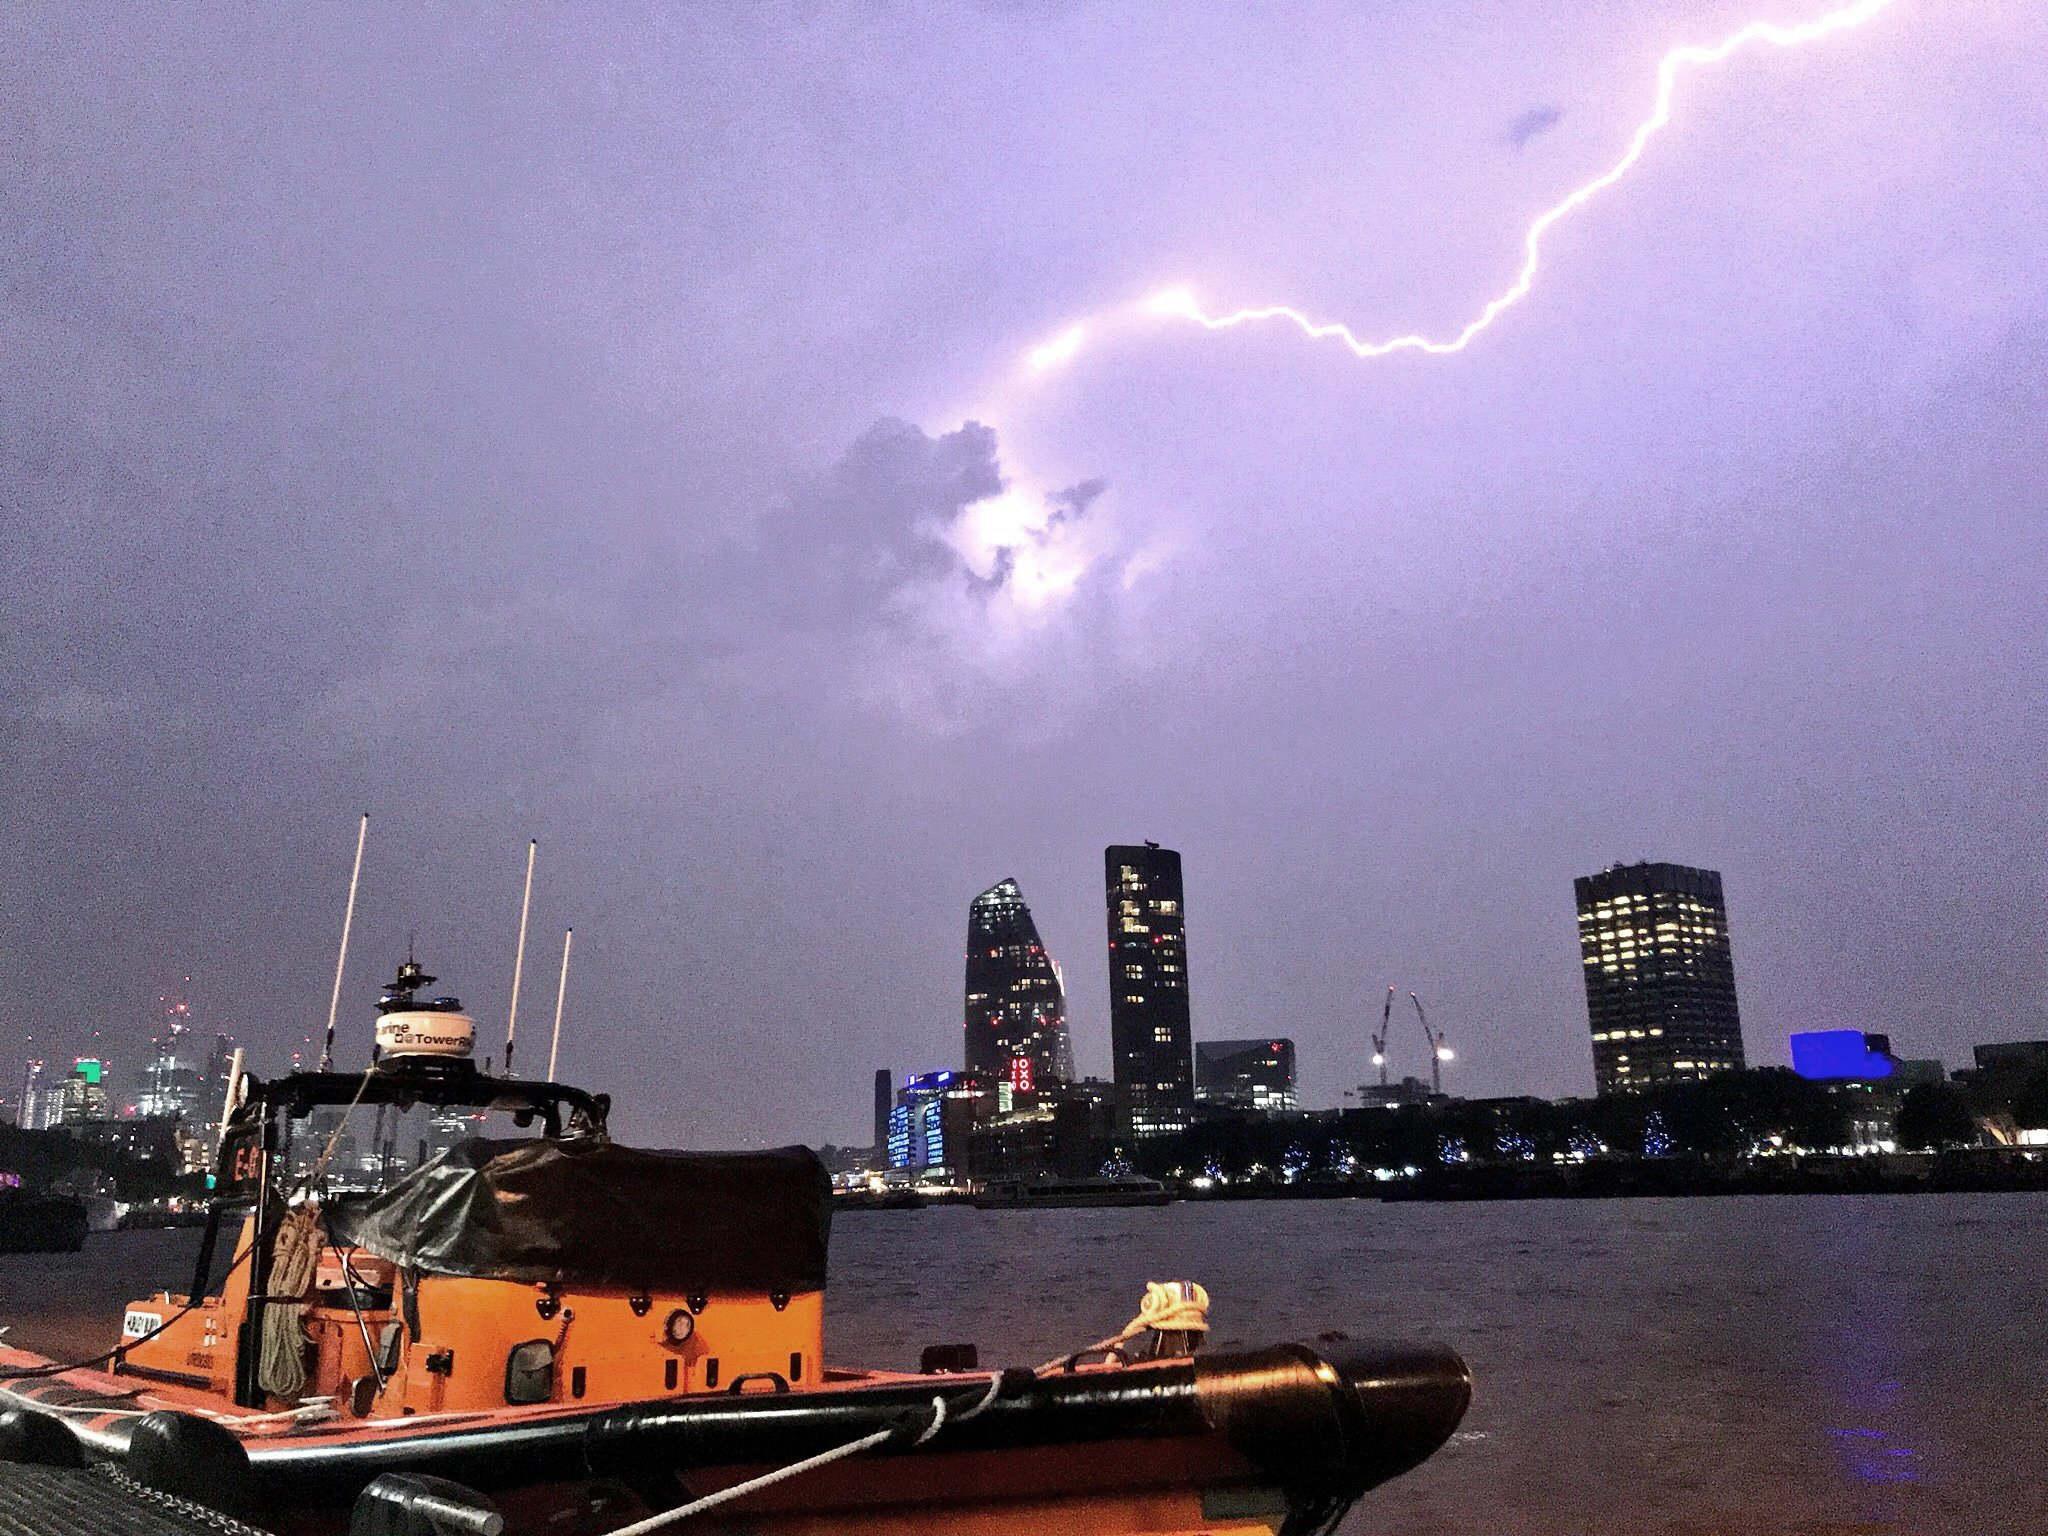 This photo made available by RNLI, shows a lightning strike during a storm in London, Saturday May 27, 2018. British meteorologists say up to 20,000 lightning strikes hit the U.K. during a powerful overnight thunderstorm, and a London-area airport is reporting flight disruptions after an aircraft refueling system was damaged. (Matt Leat/RNLI via AP)